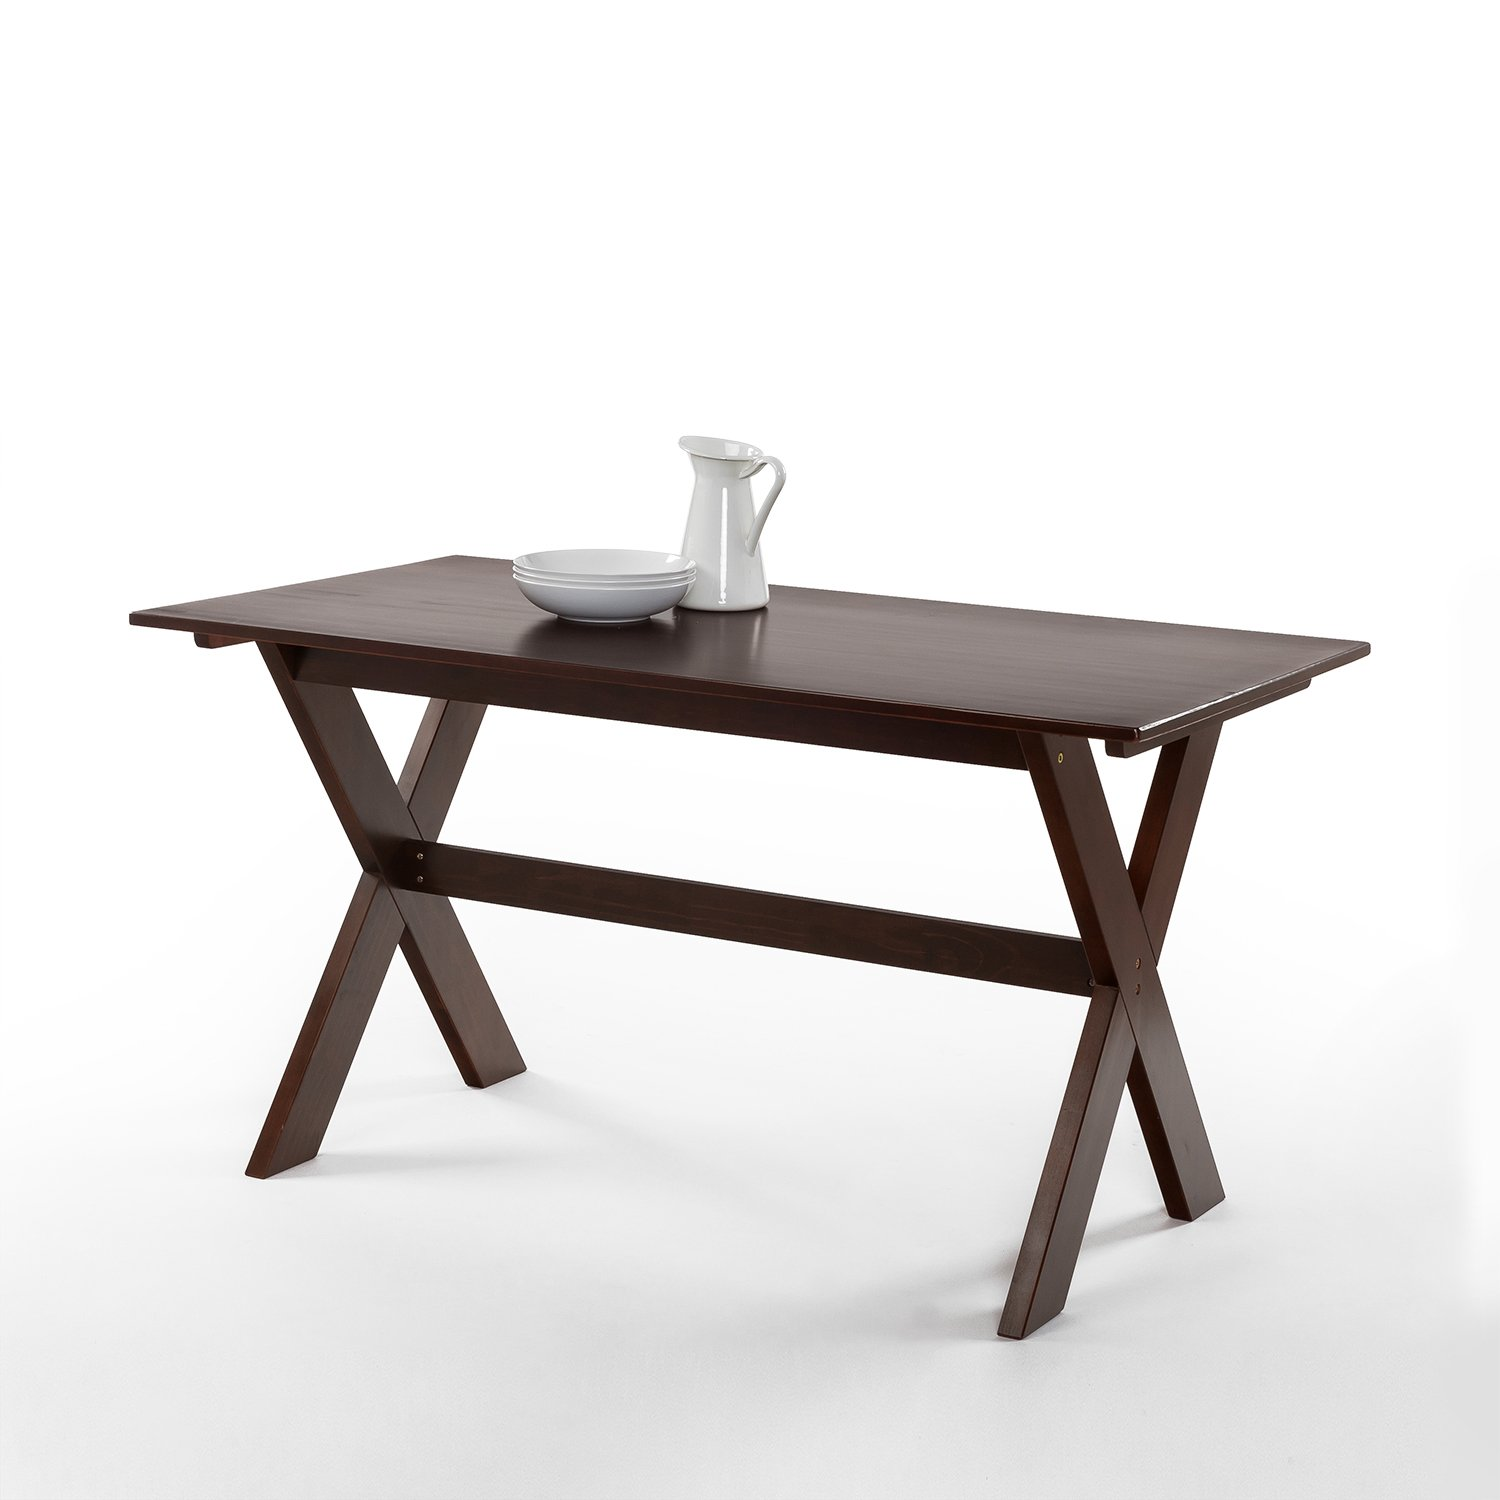 Zinus William Trestle Large Wood Dining Table / Espresso by Zinus